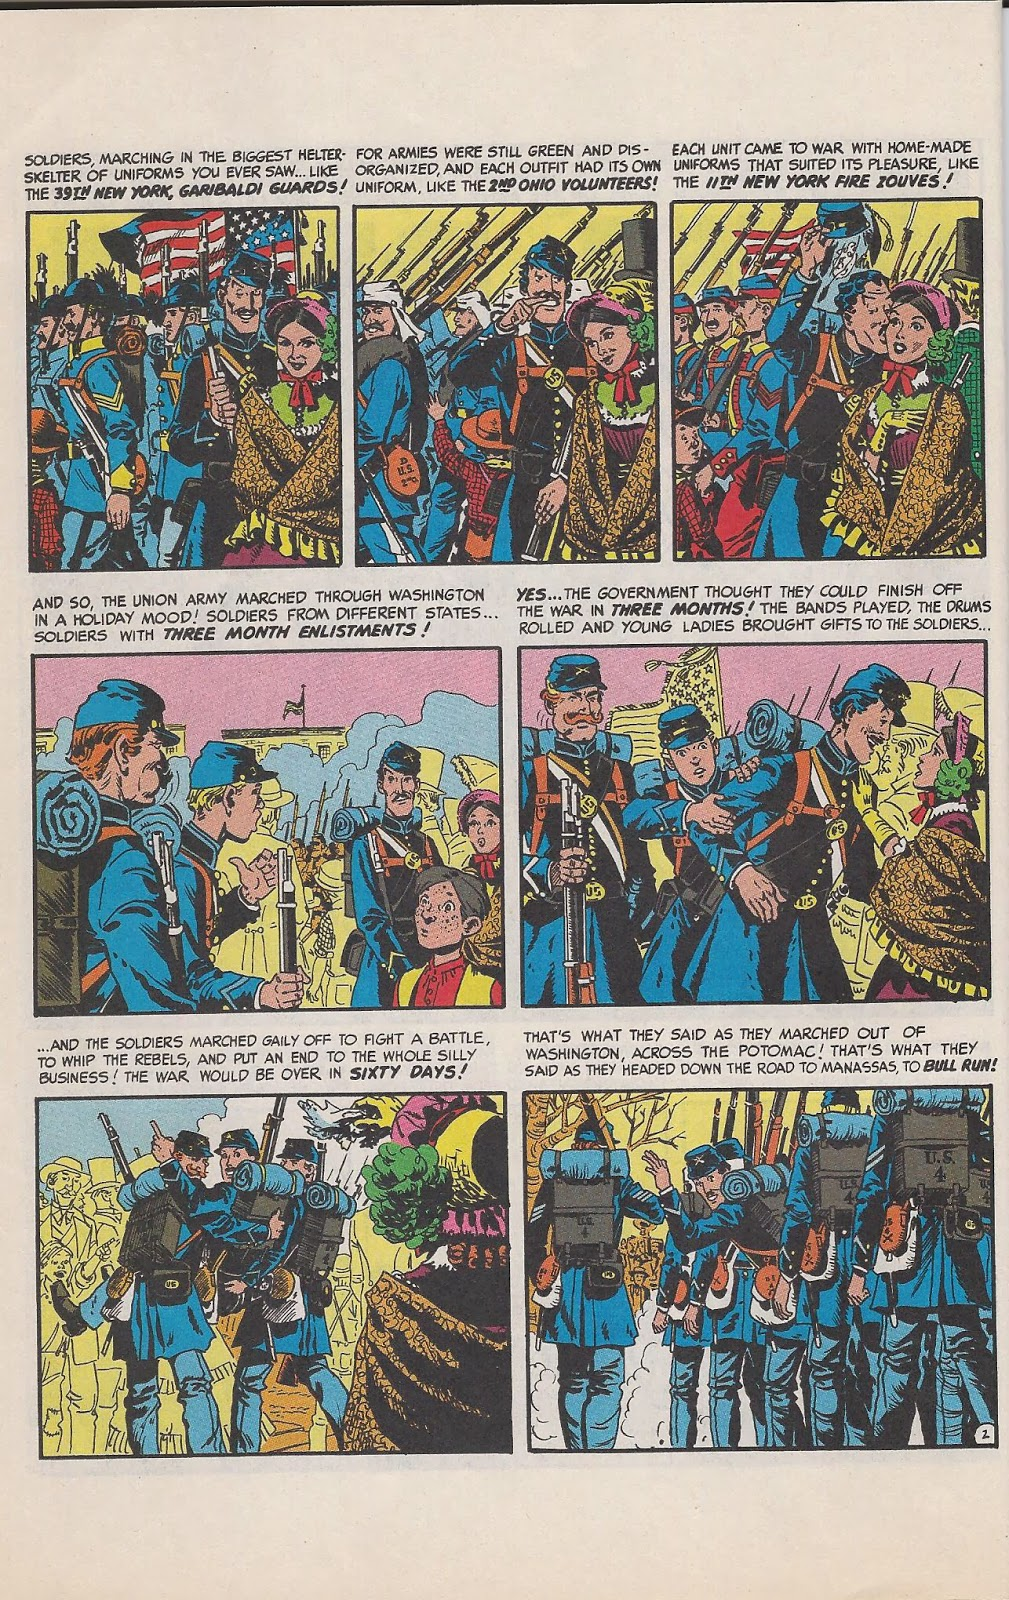 Art by John Severin, who lead the field of Civil War illustrating. The story was laid out by editor Harvey Kurtzman - of course history wrote it.